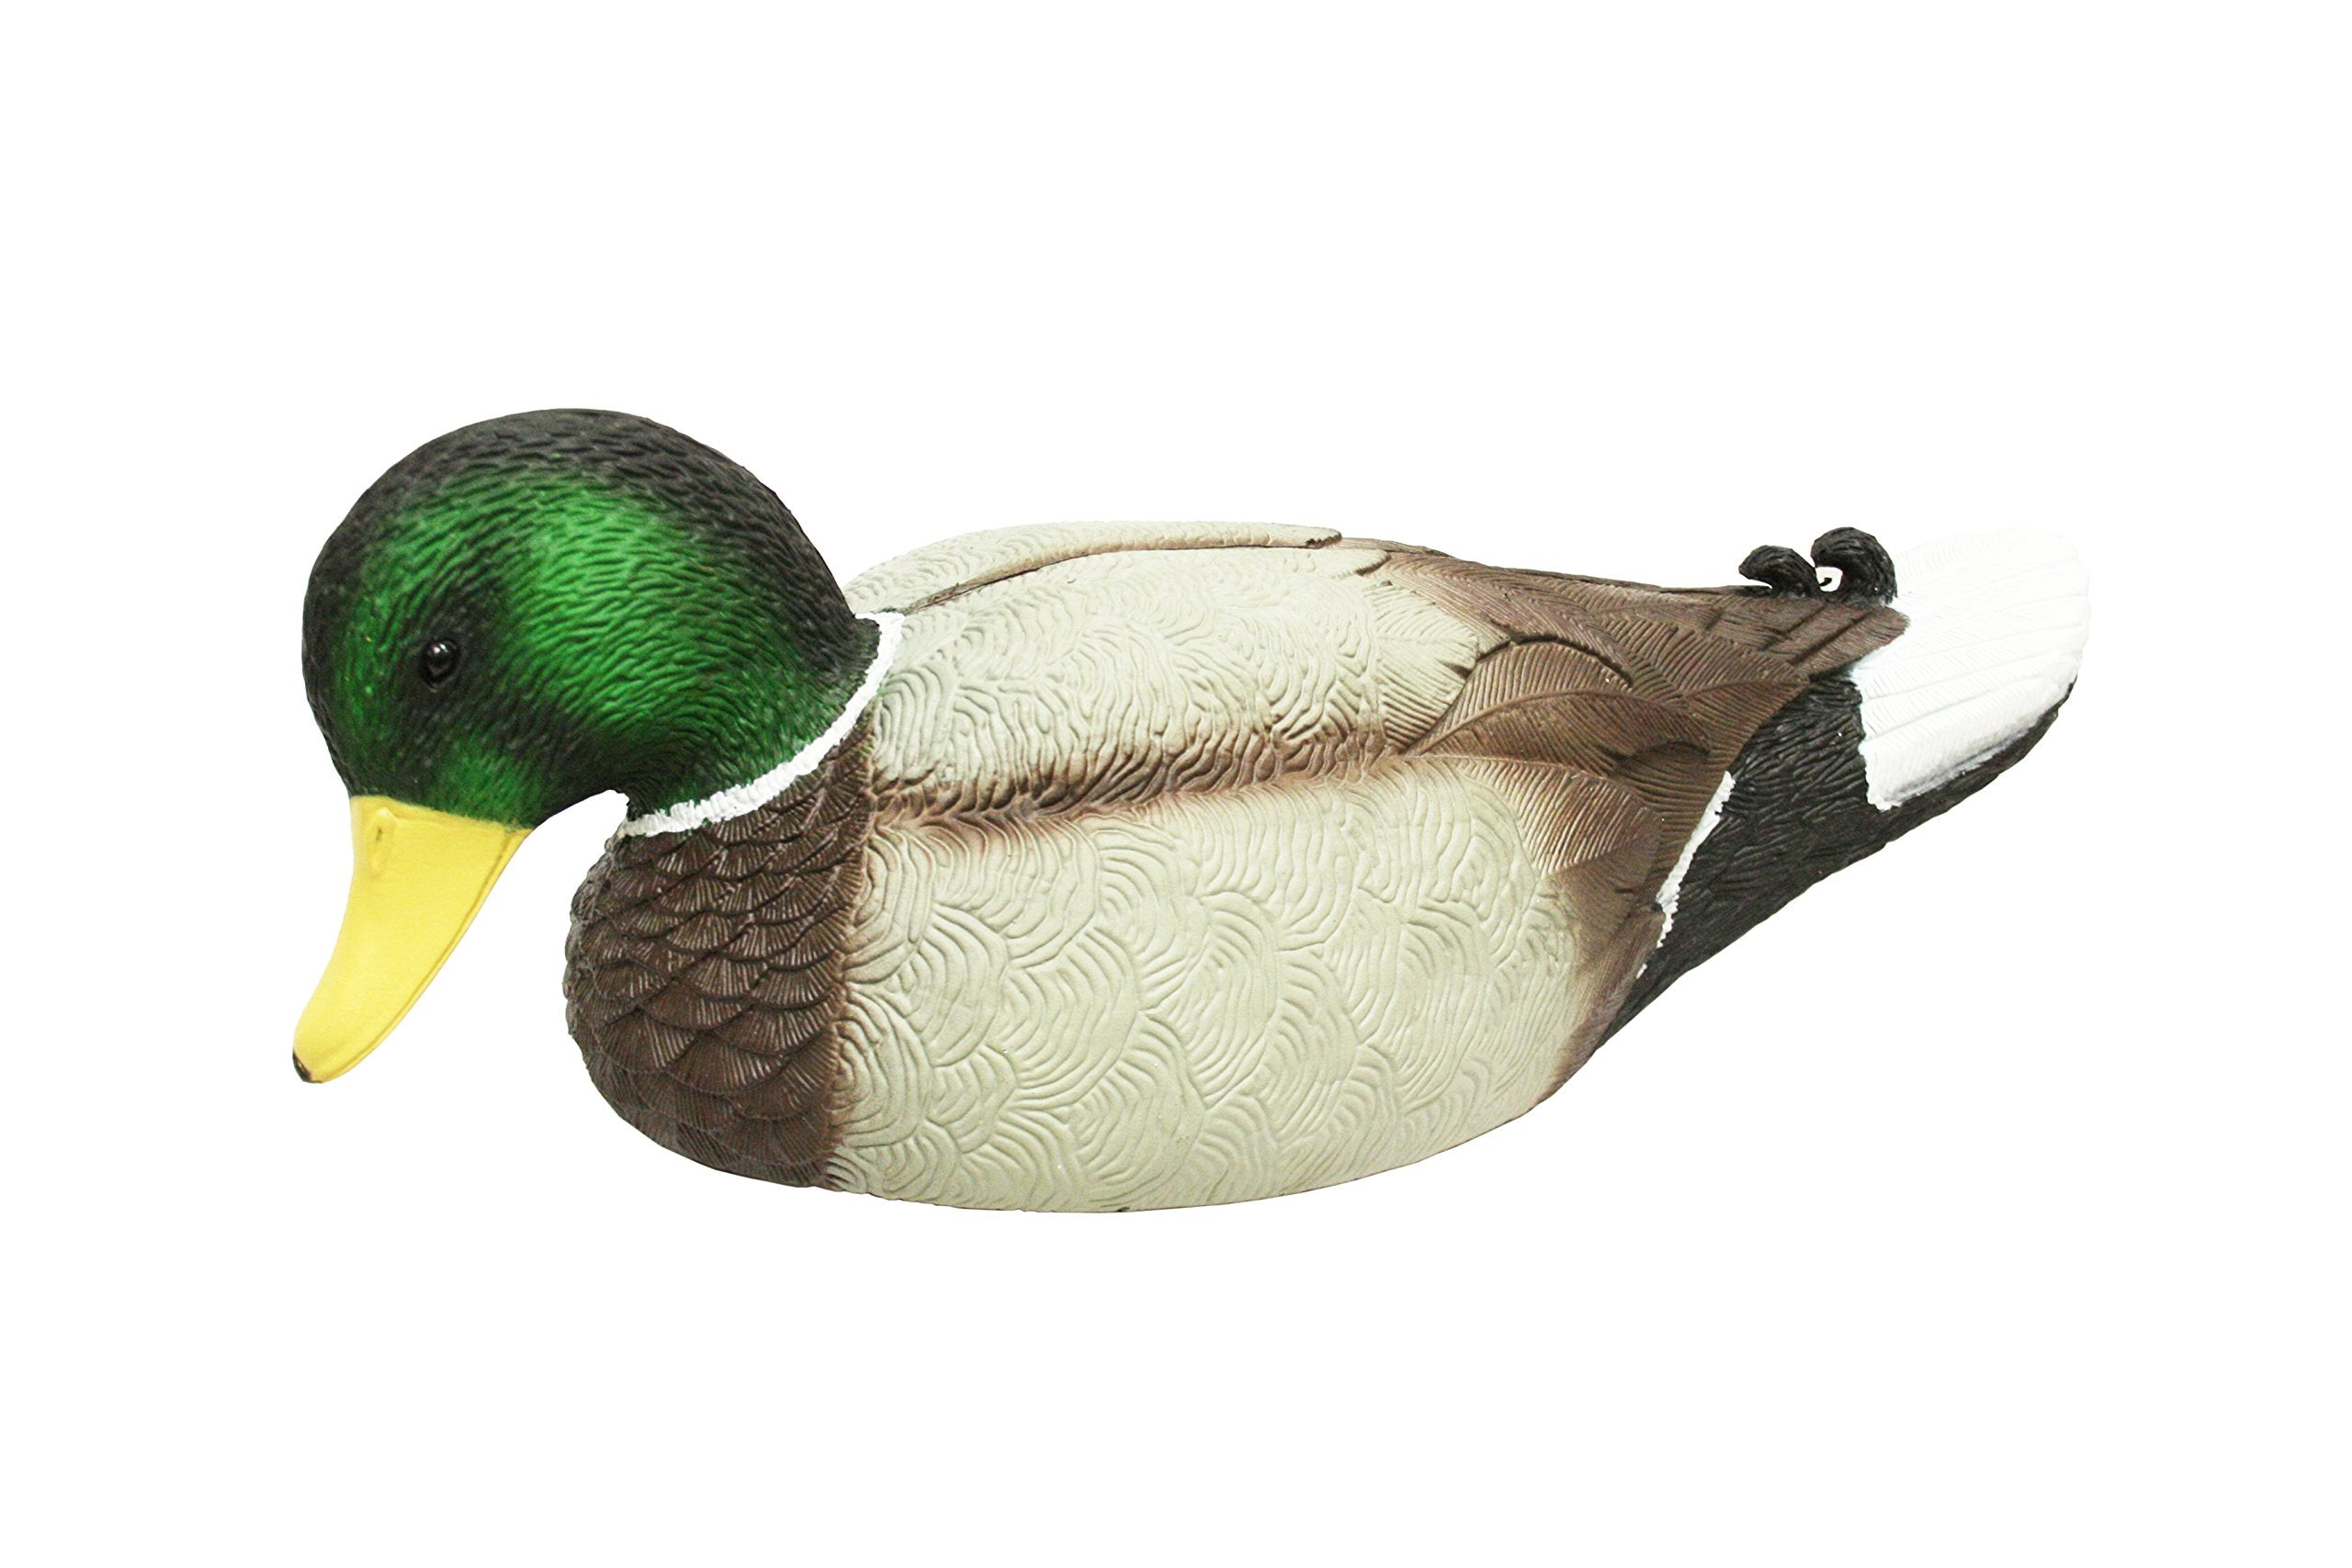 MOJO Outdoors Rippler Vibrating Motion Duck Decoy - Ctfitnesswear